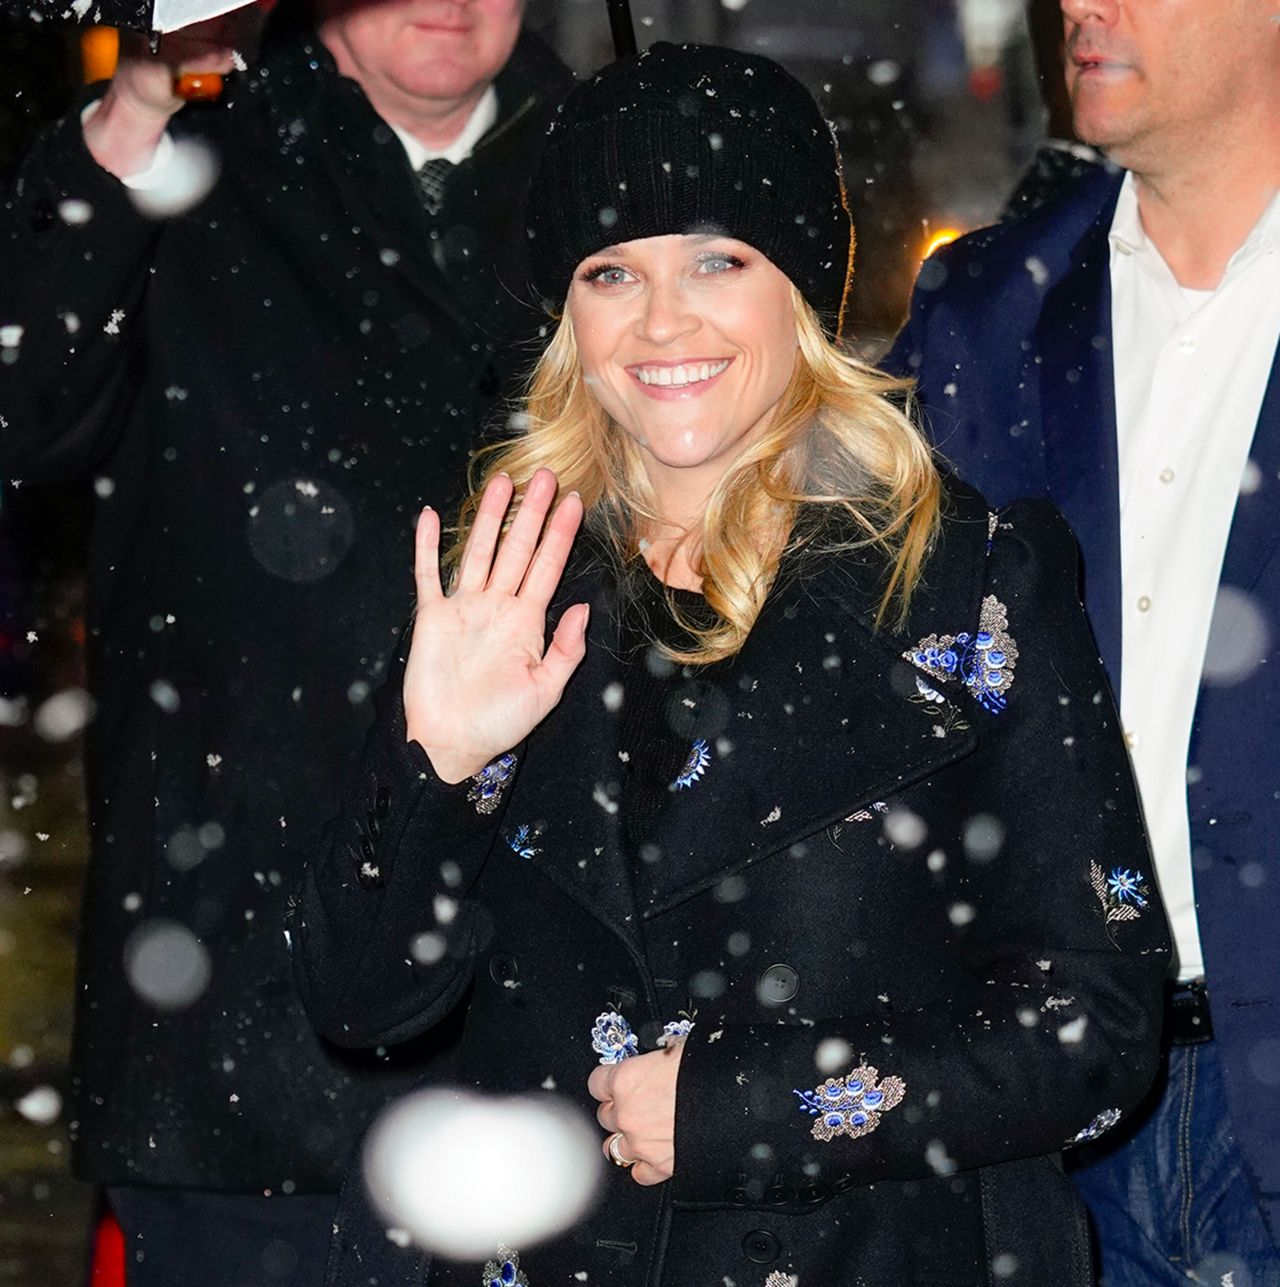 http://celebmafia.com/wp-content/uploads/2018/03/reese-witherspoon-arriving-at-the-late-show-with-stephen-colbert-in-nyc-03-07-2018-3.jpg